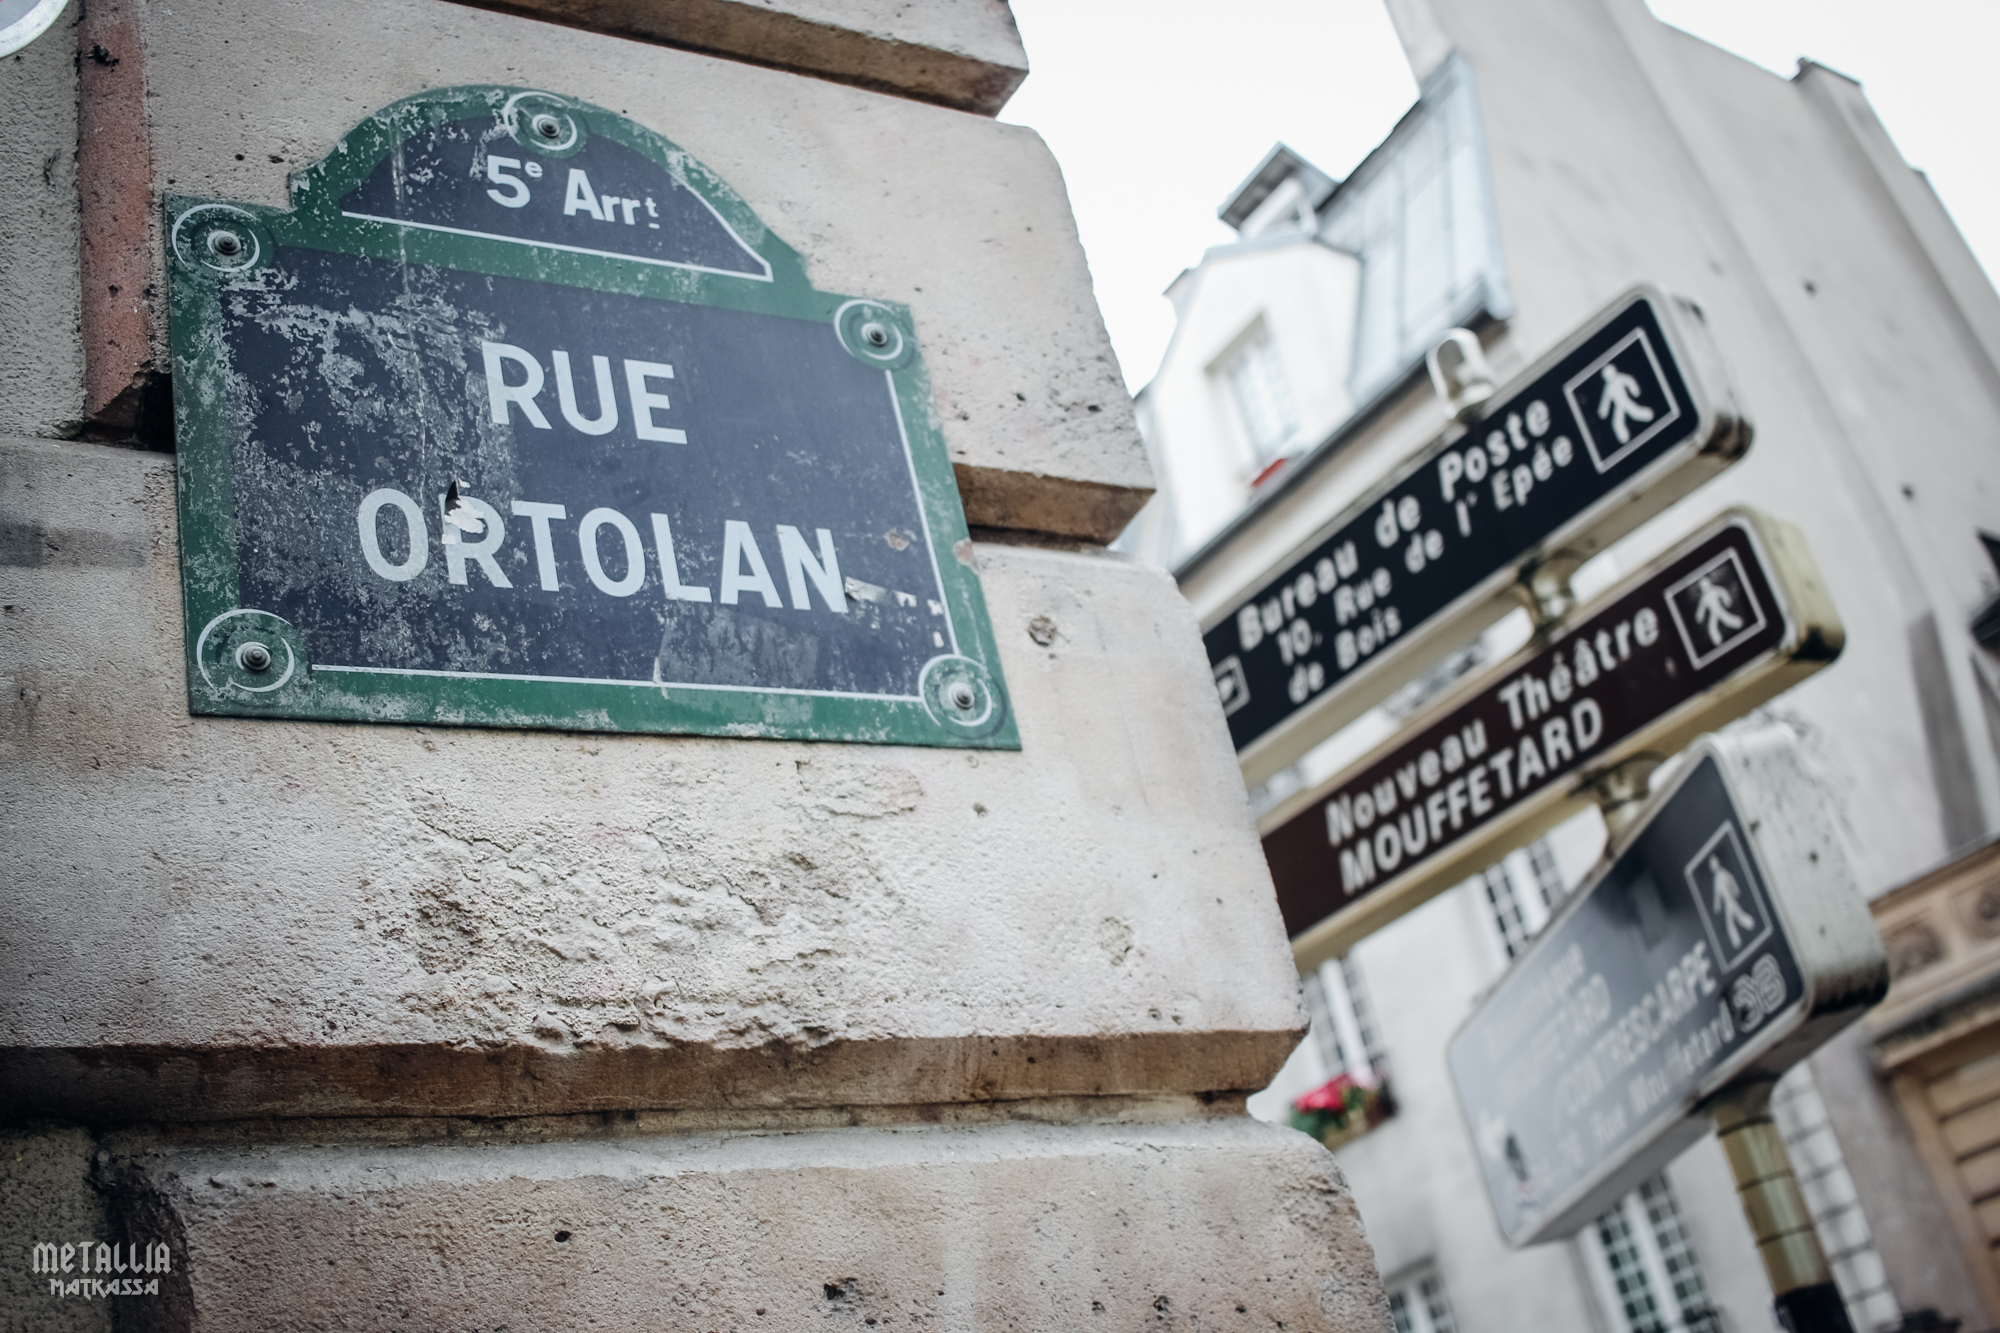 paris, rue ortolan, pariisi